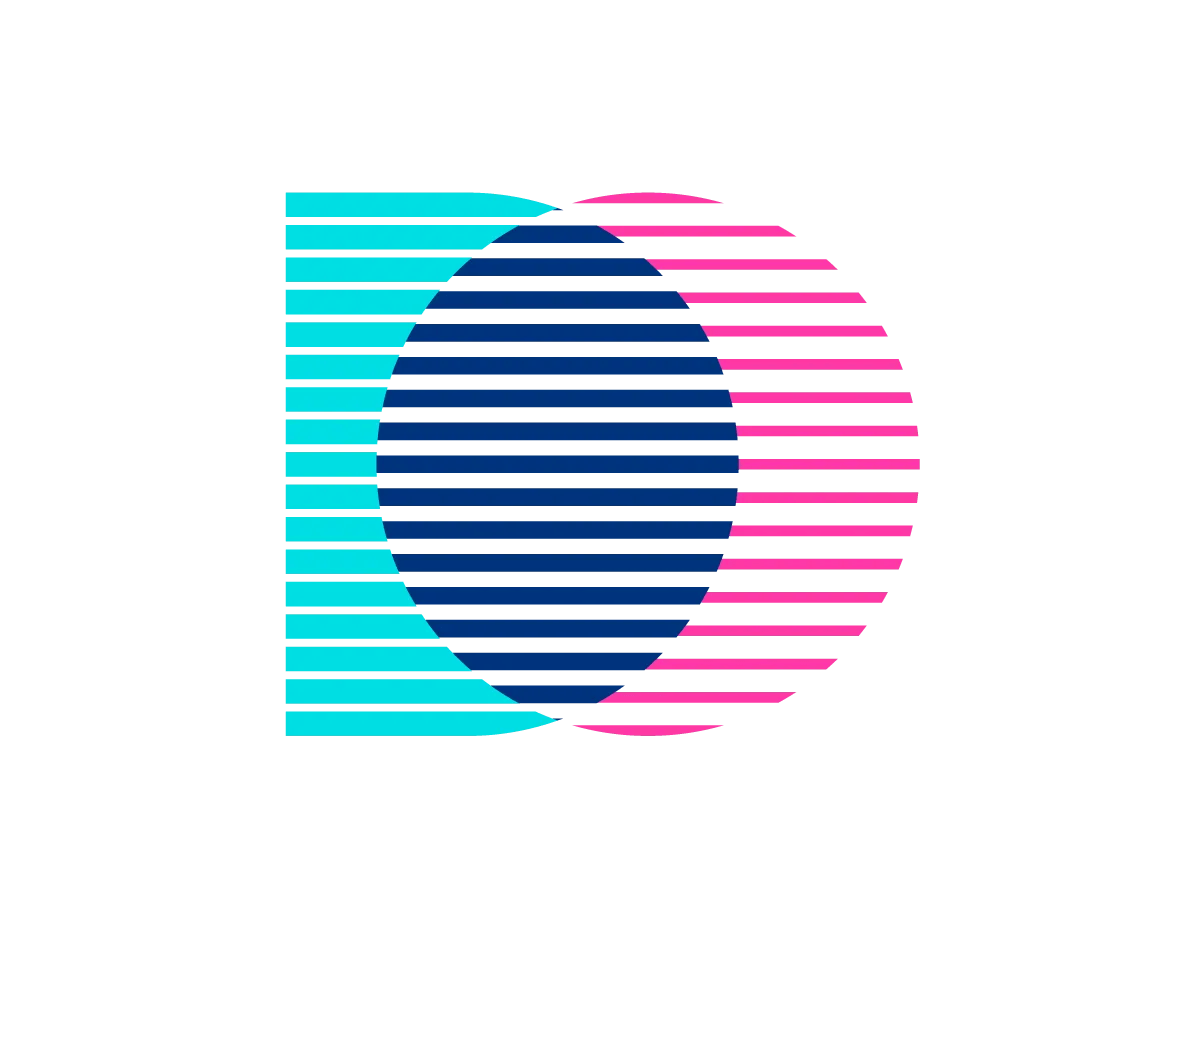 The Digital Space